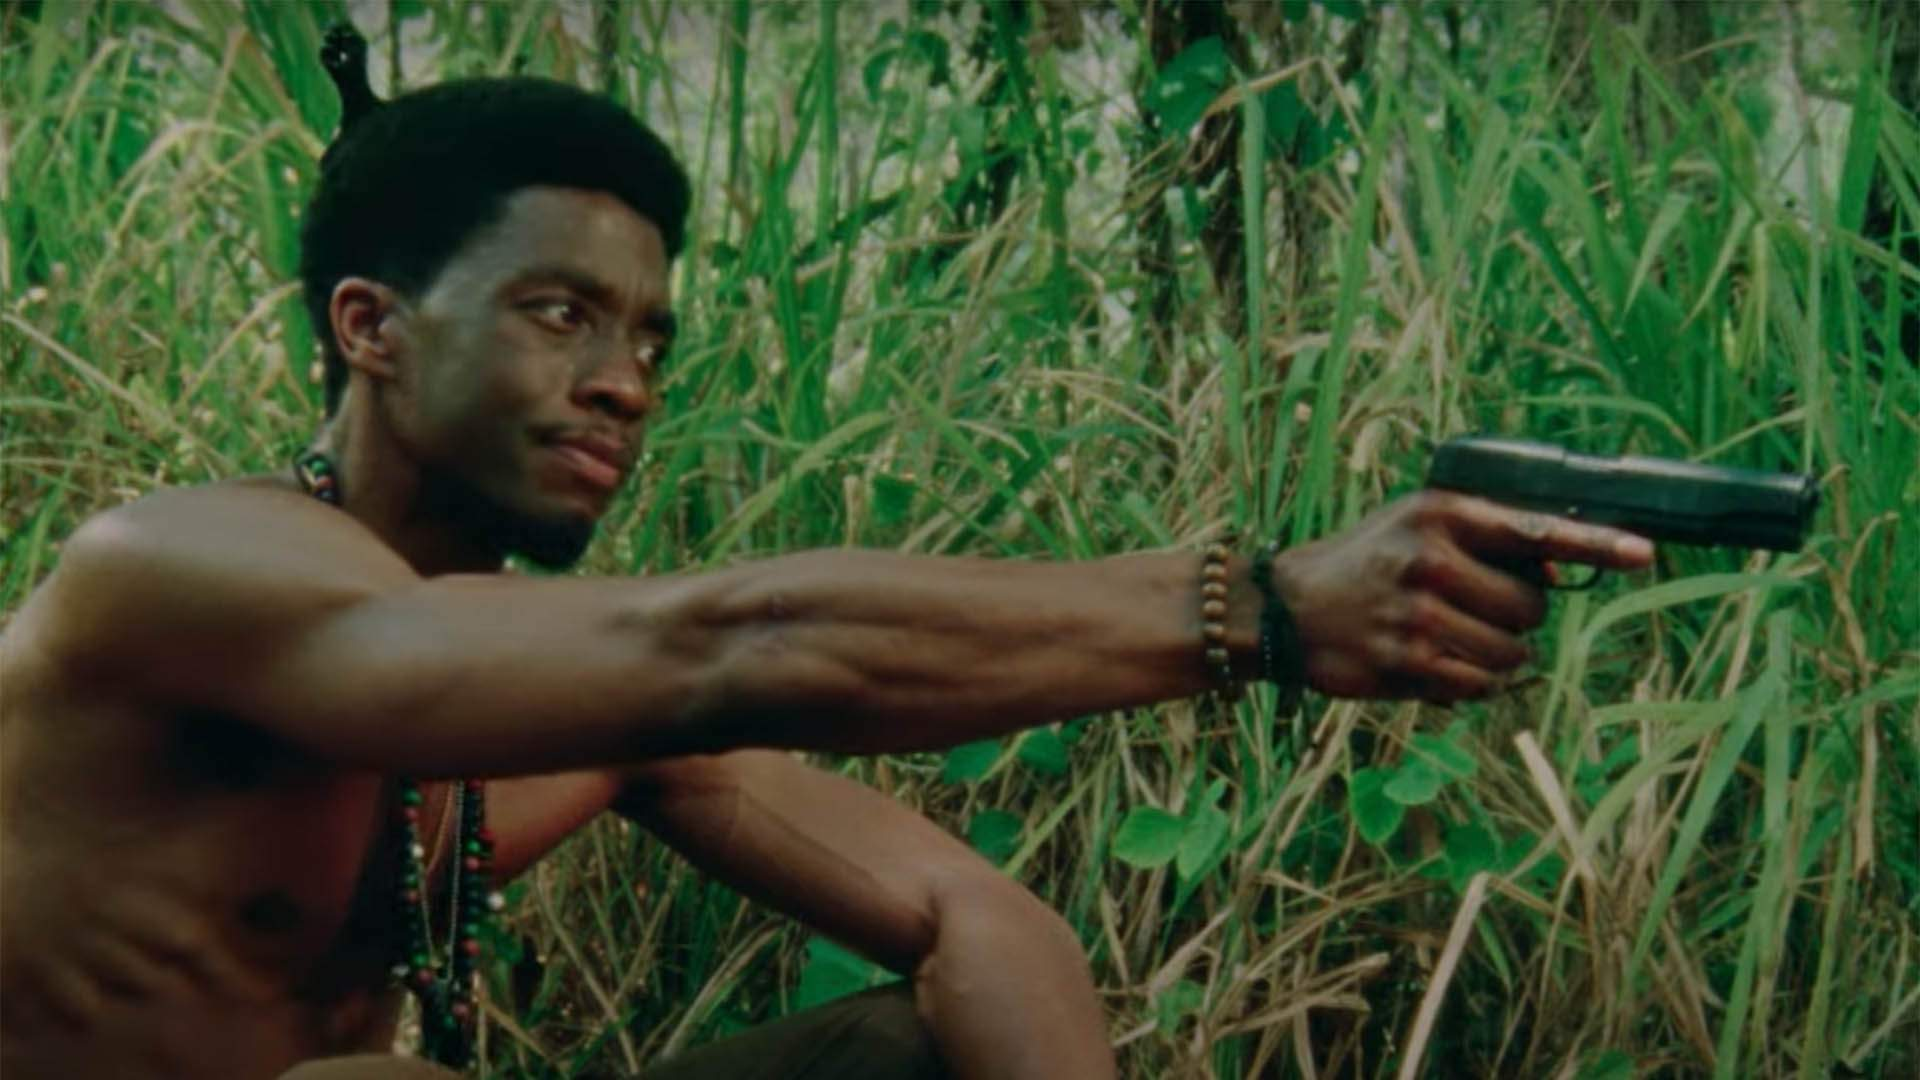 The First Trailer for Spike Lee's New Vietnam War Heist Thriller 'Da 5 Bloods' Is Here